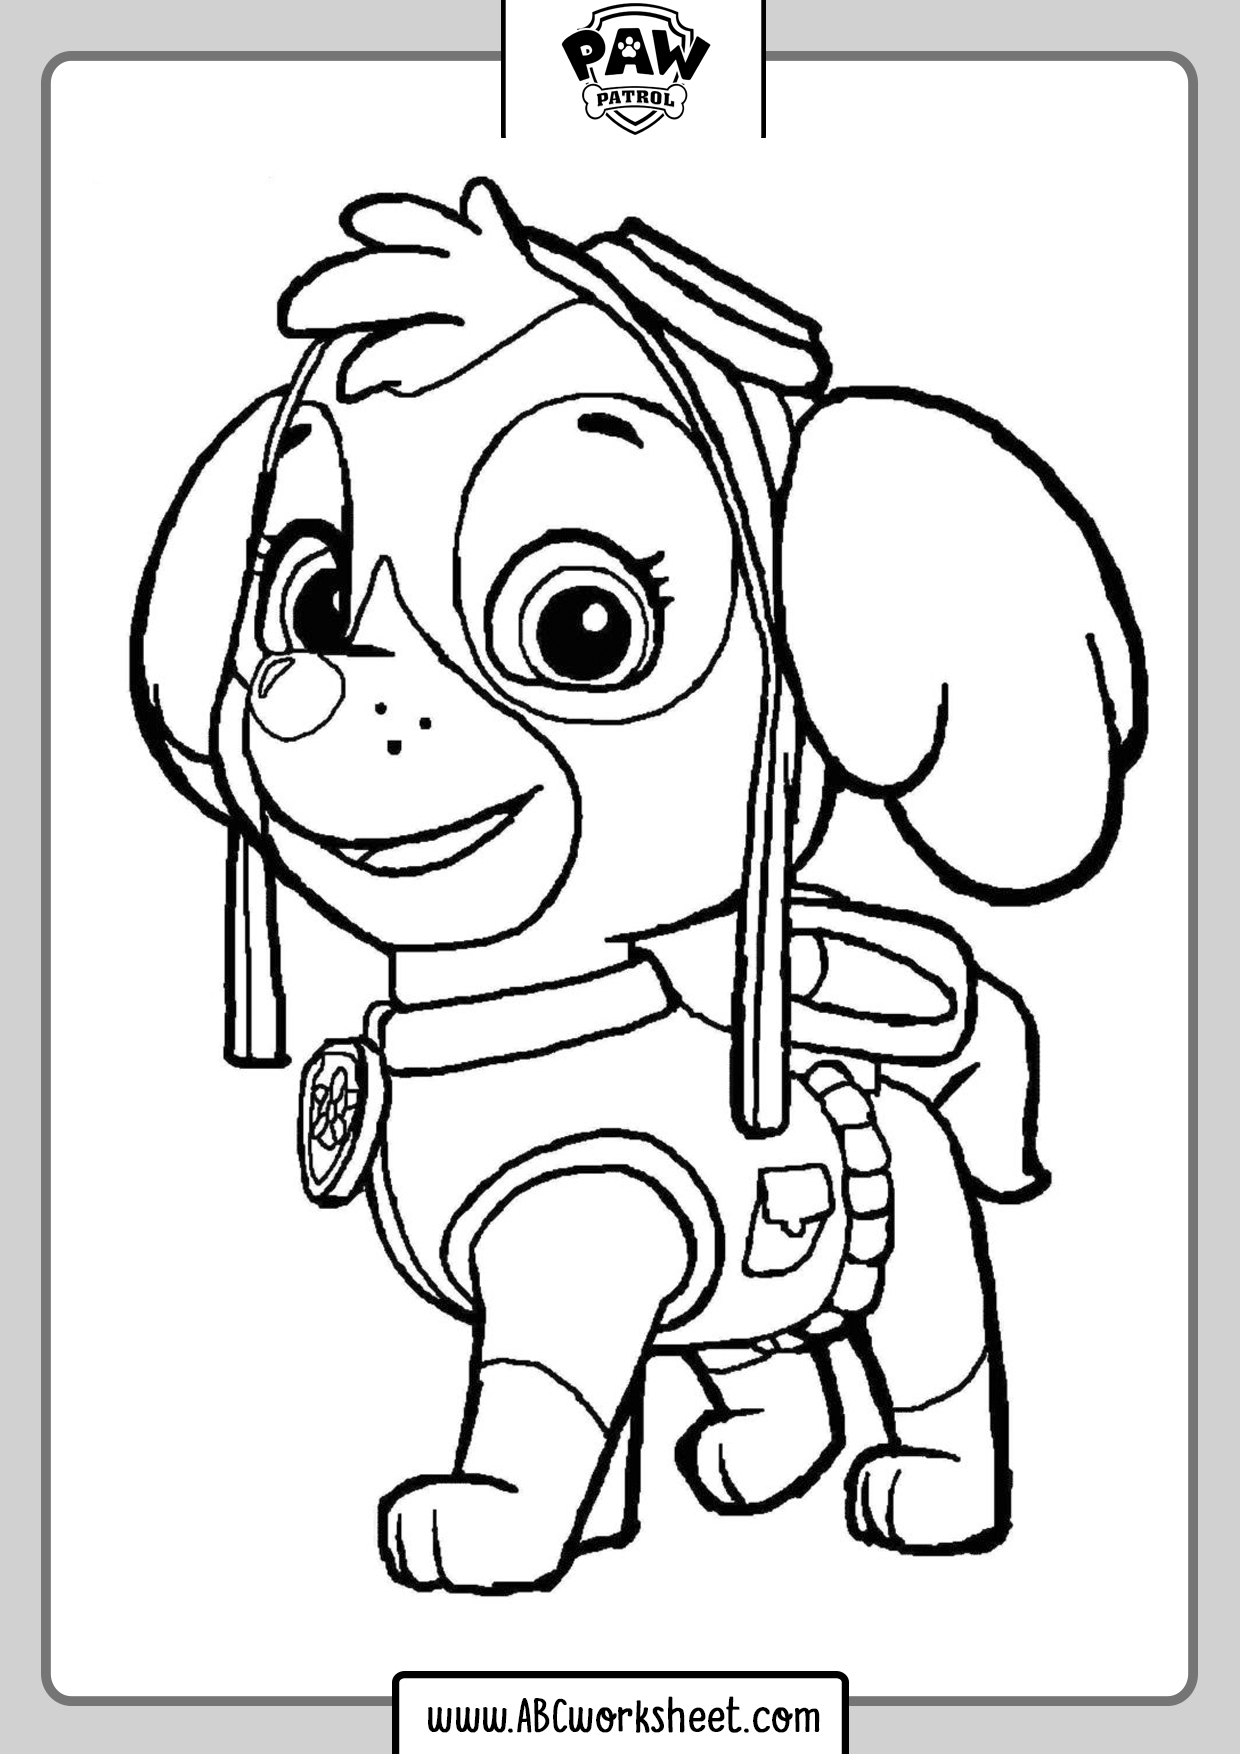 Coloring Pages Paw Patrol